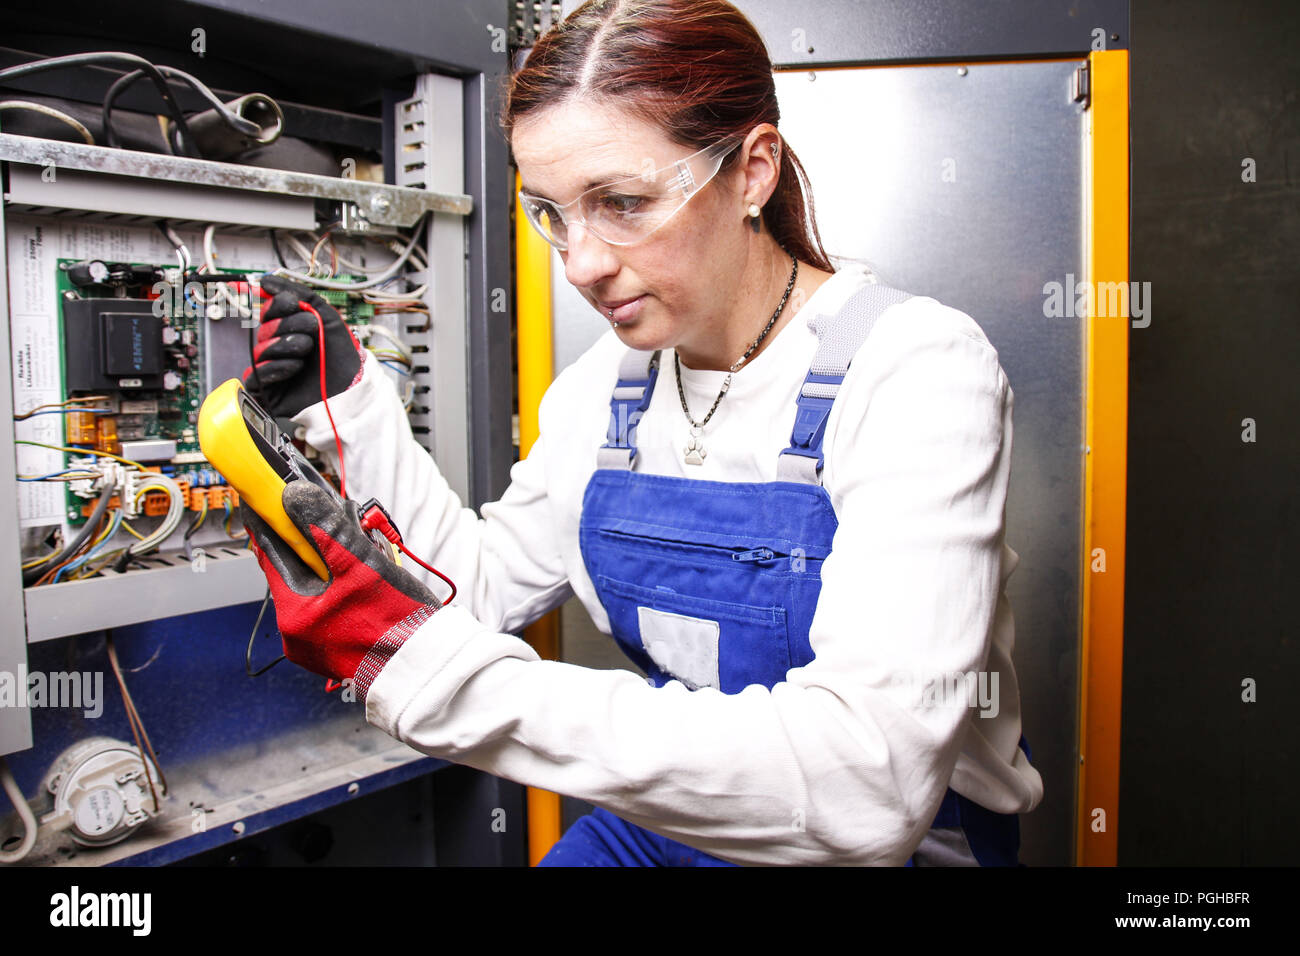 female electrician fixing an engine control panel Stock Photo